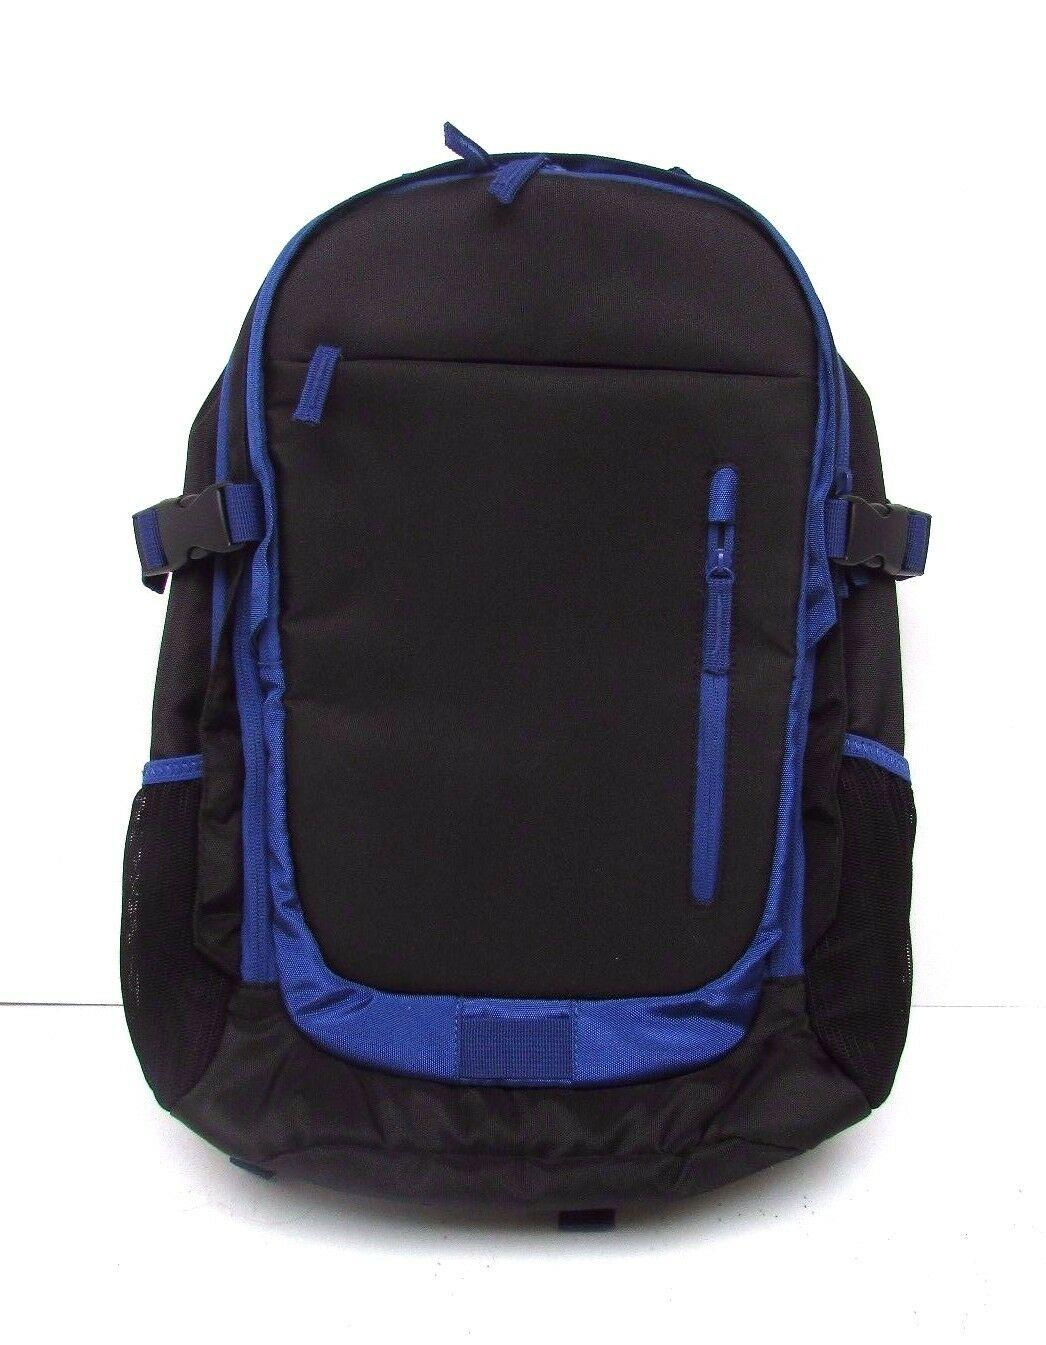 Jansport Backpack Black Staples- Fenix Toulouse Handball 1a7003ebf8d28